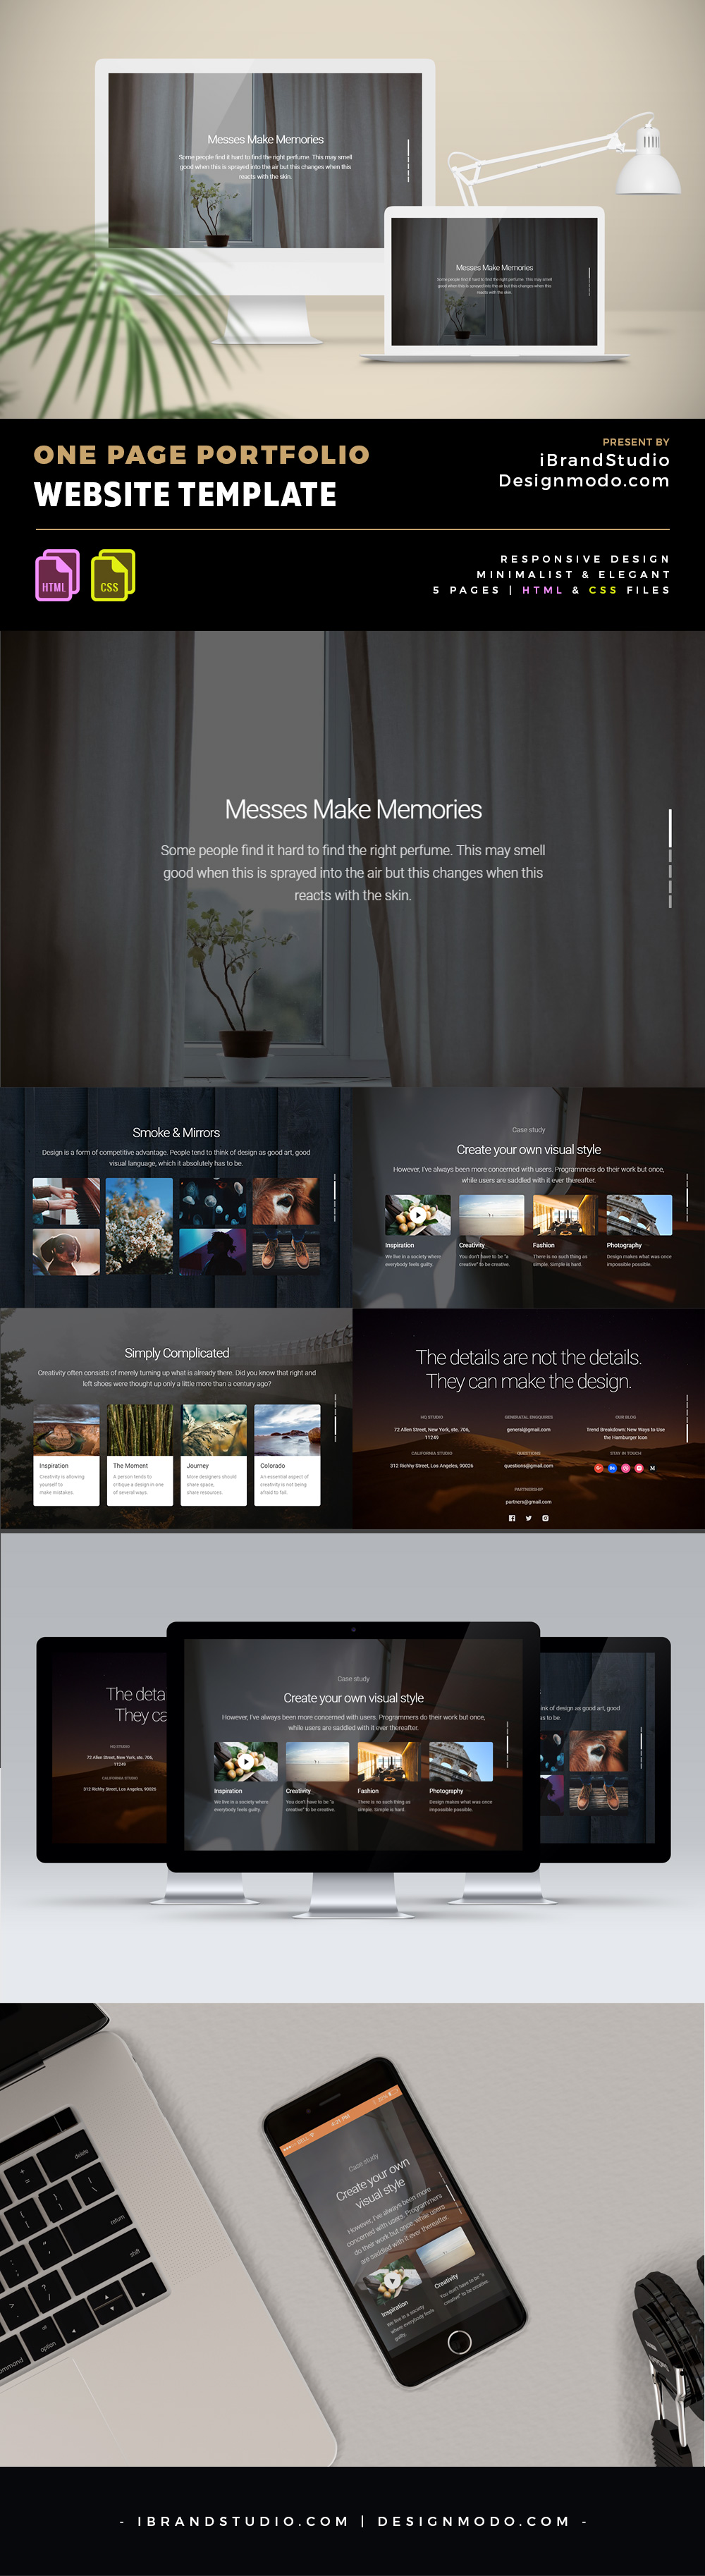 Free One Page Portfolio HTML Template